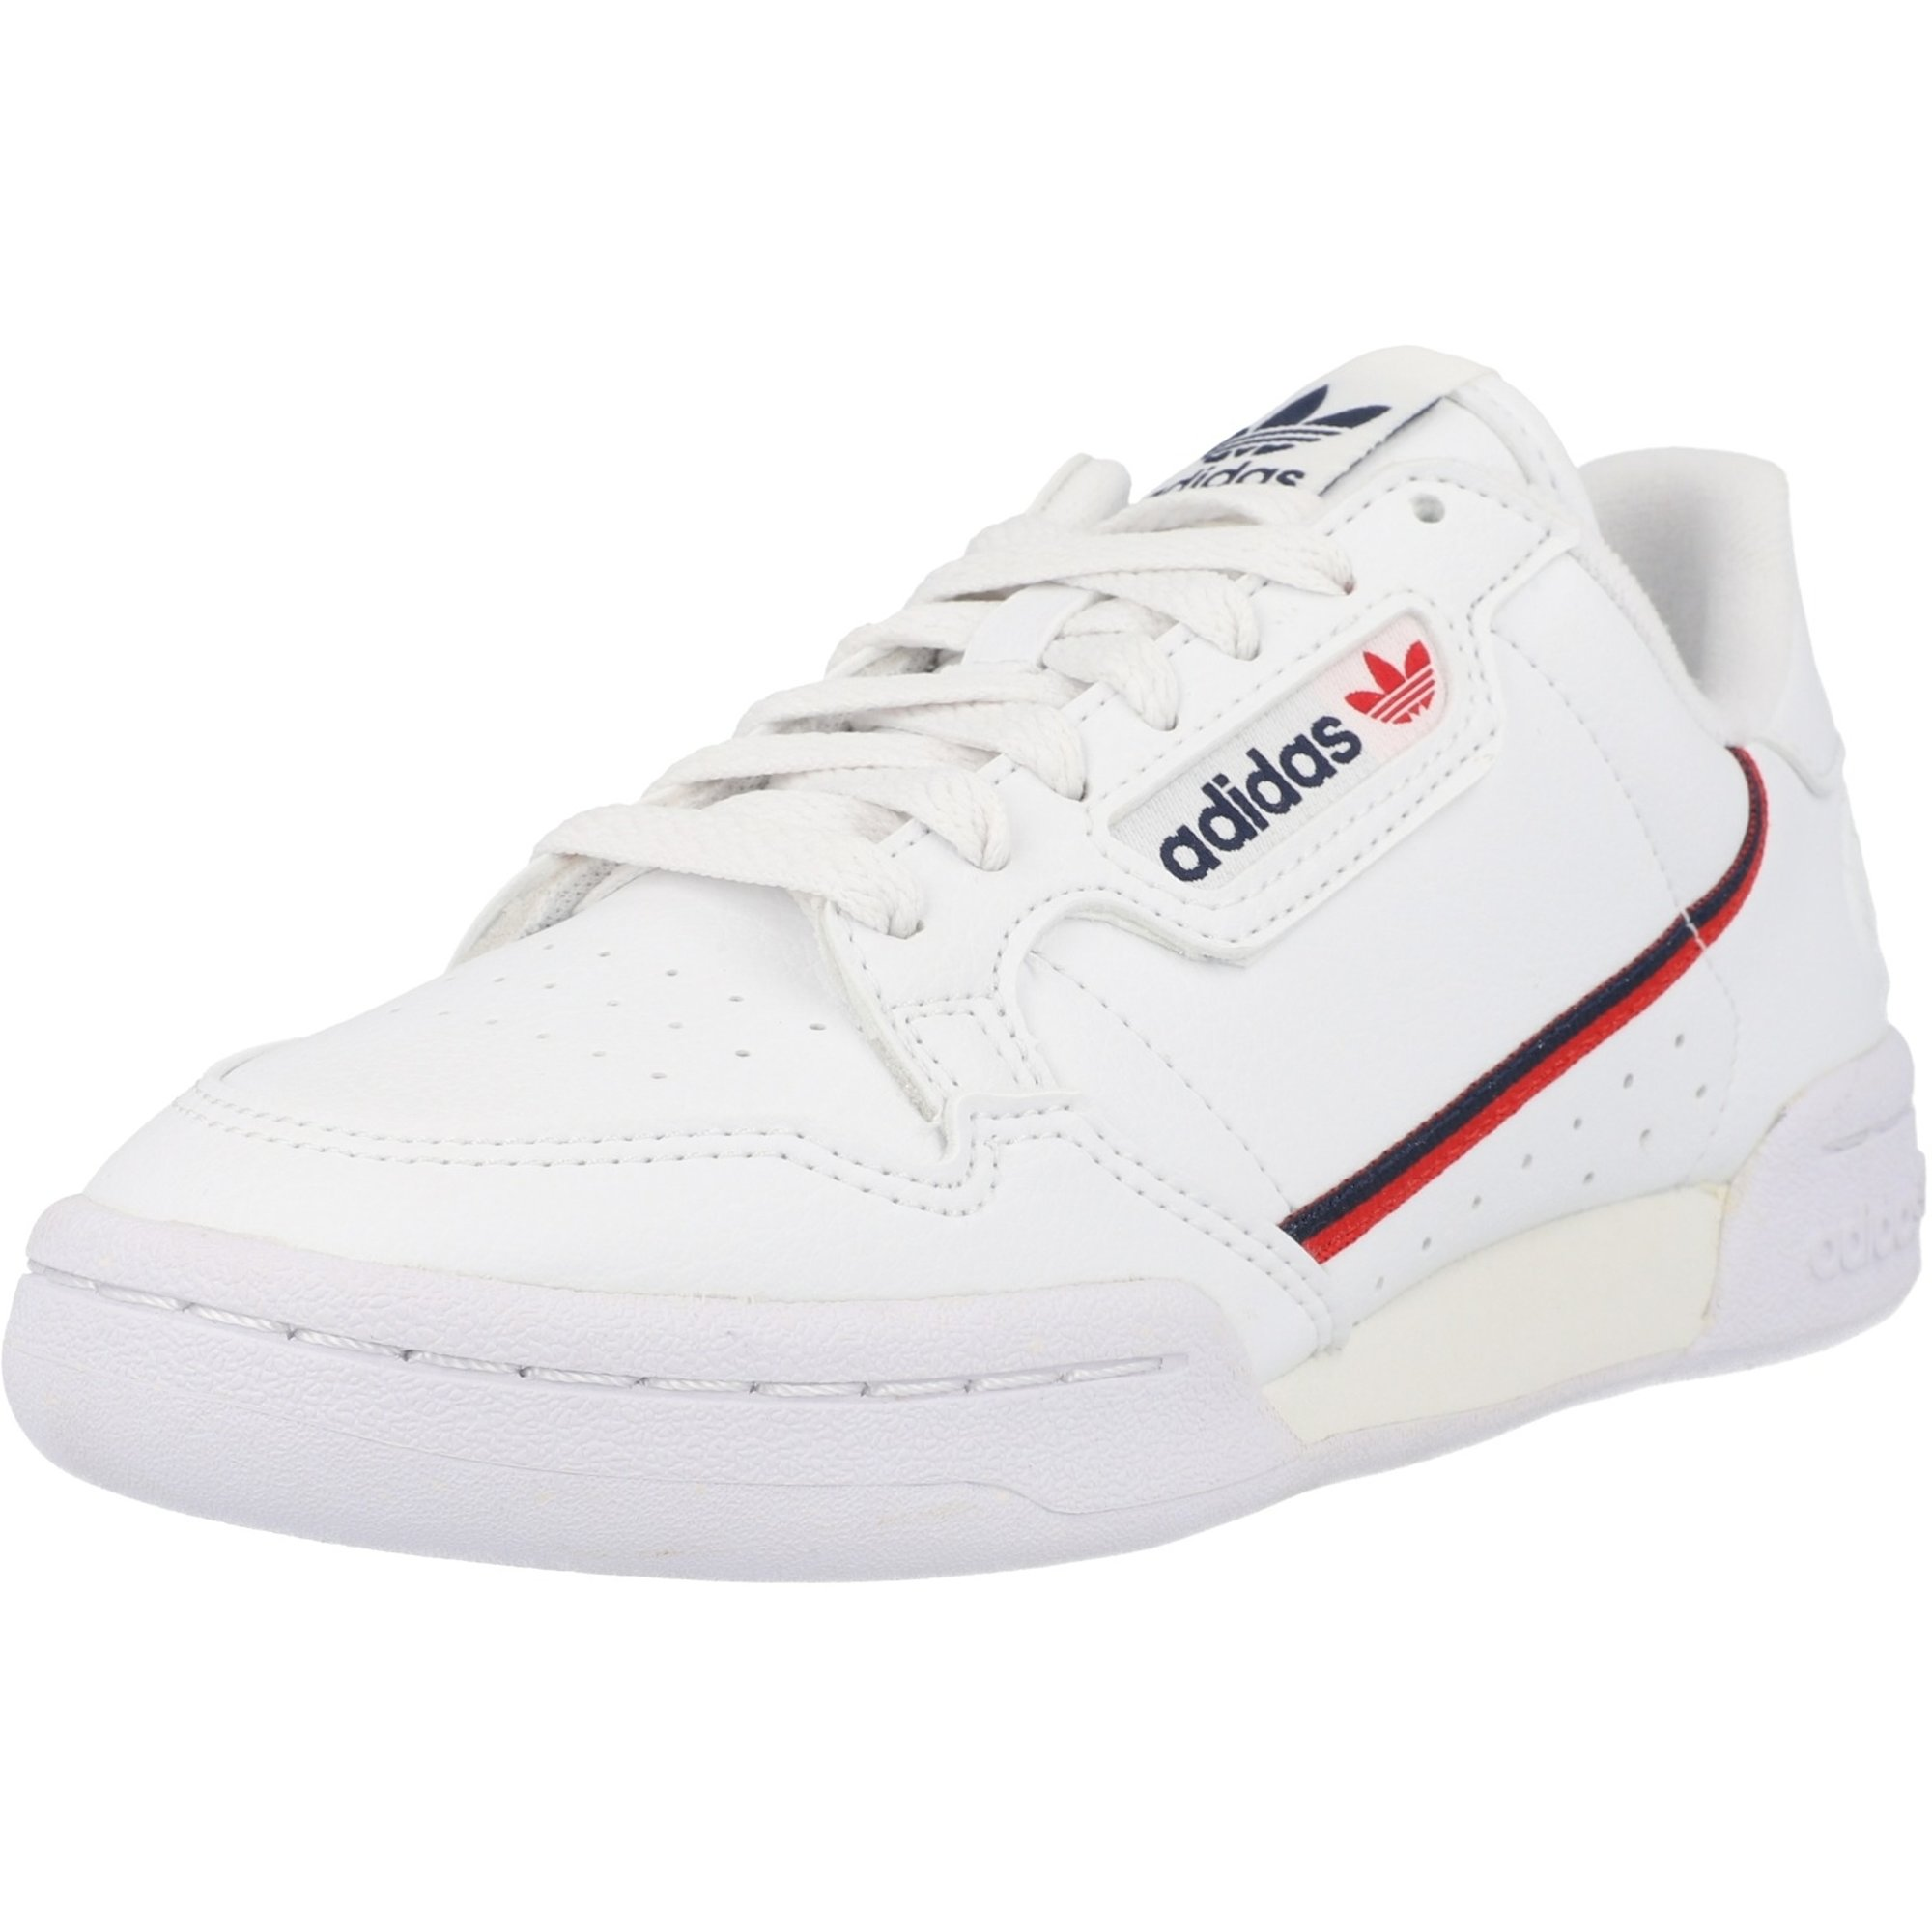 adidas Originals Continental 80 Vegan White/Collegiate Navy Synthetic